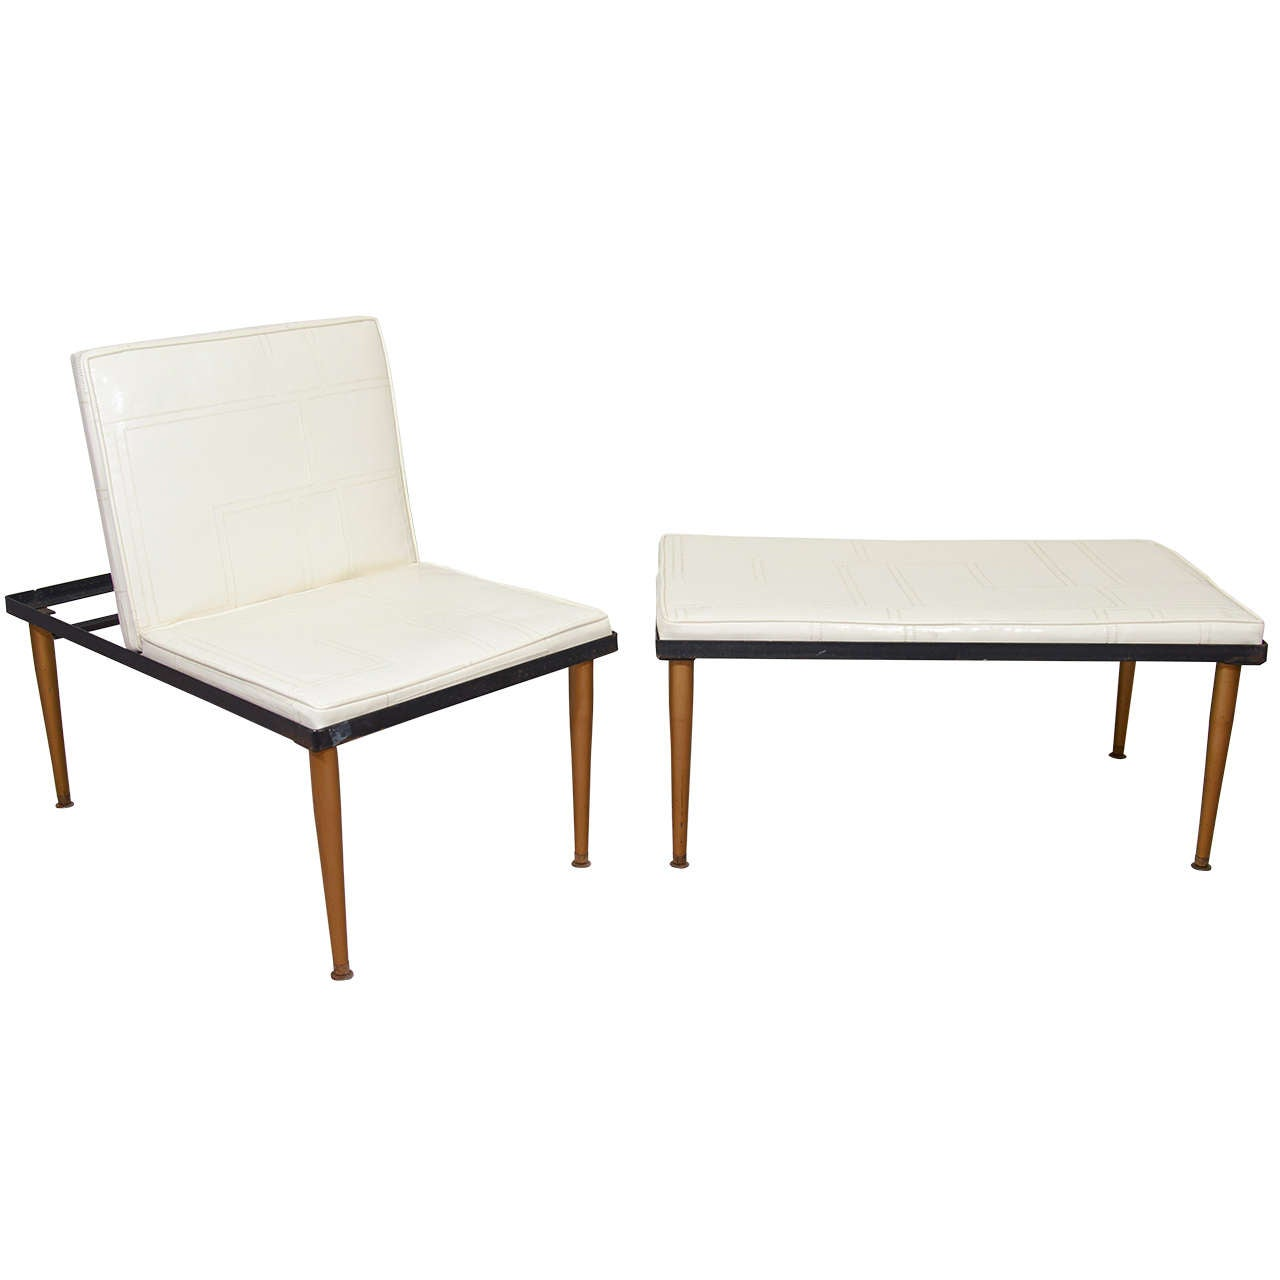 A Mid Century Matching Vinyl Adjustable Chair And Bench At